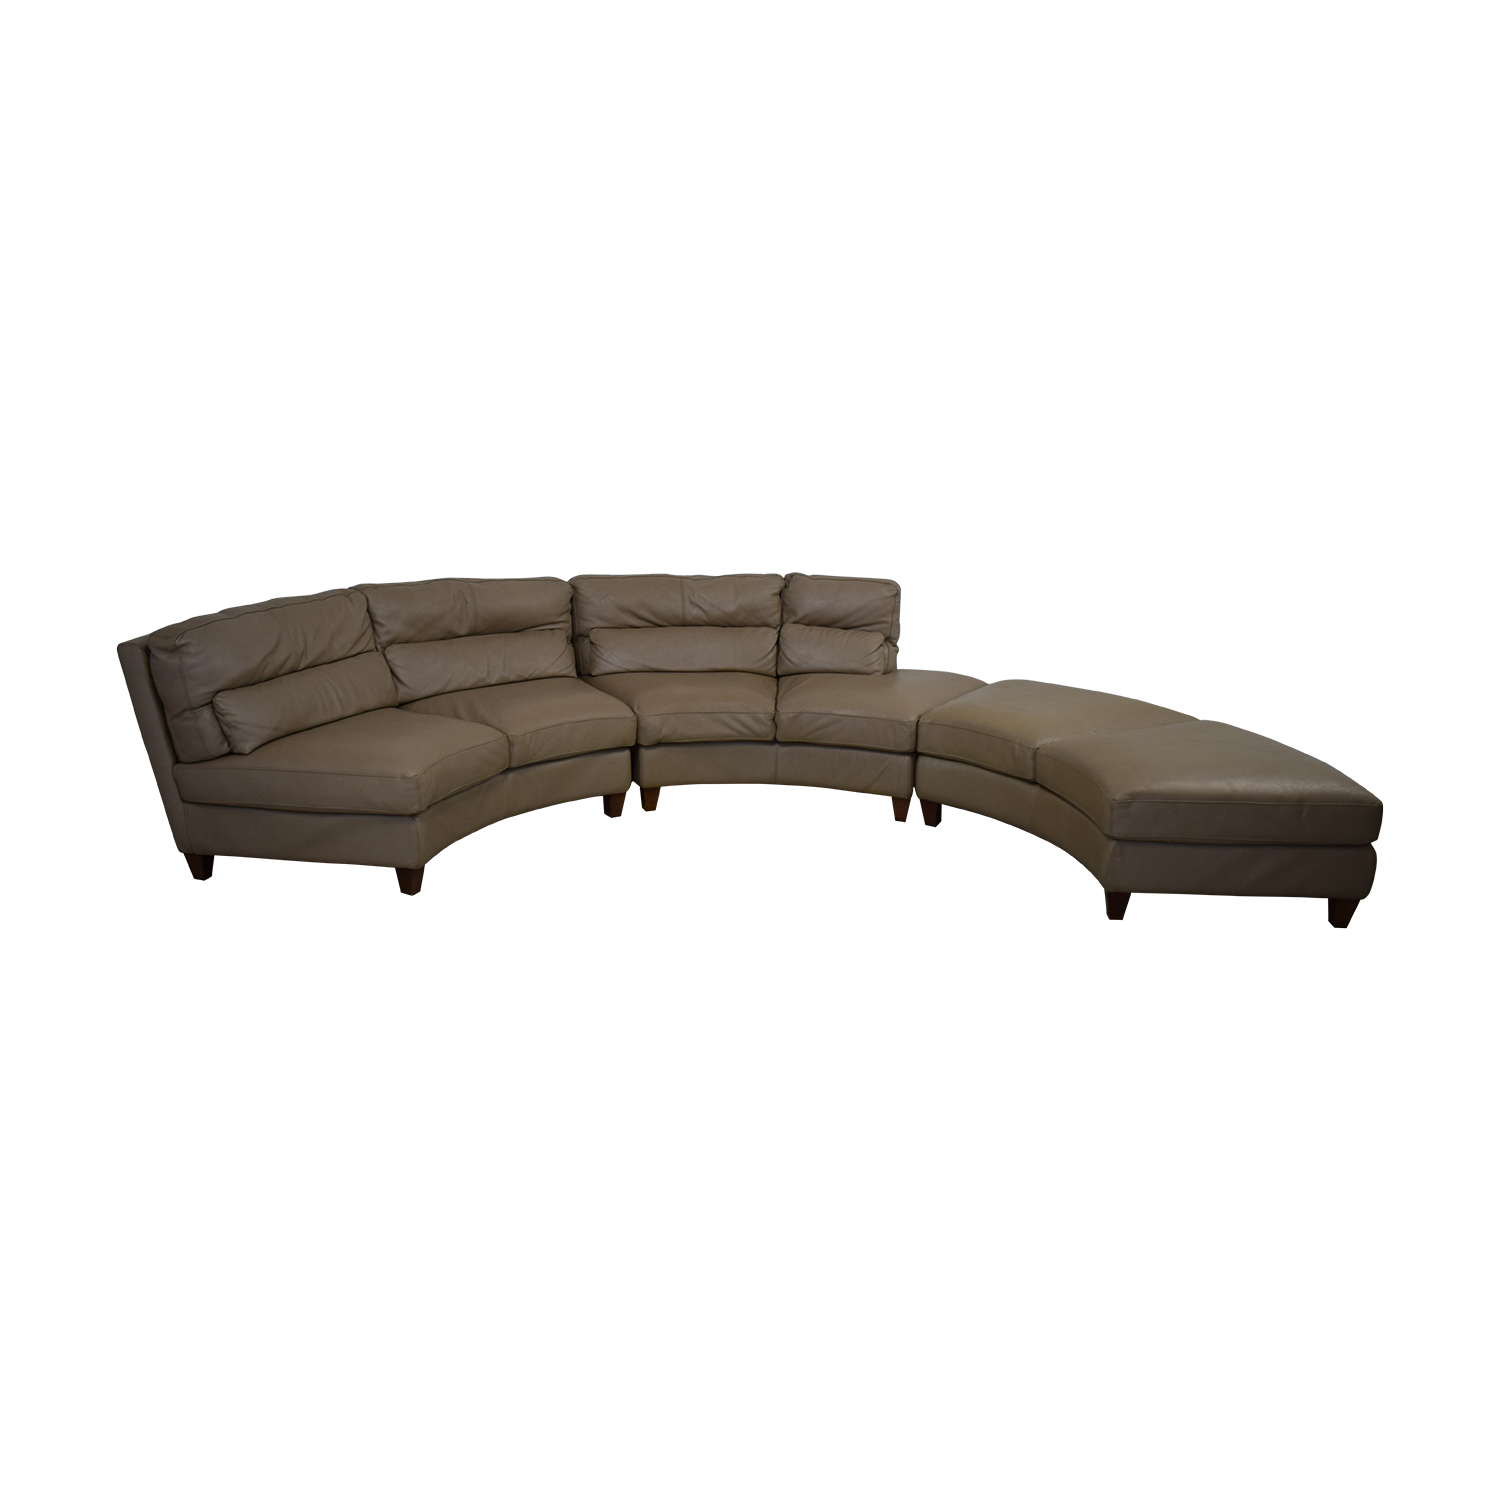 buy Chateau d'Ax Curved Sectional Sofa Chateau d'Ax Sectionals